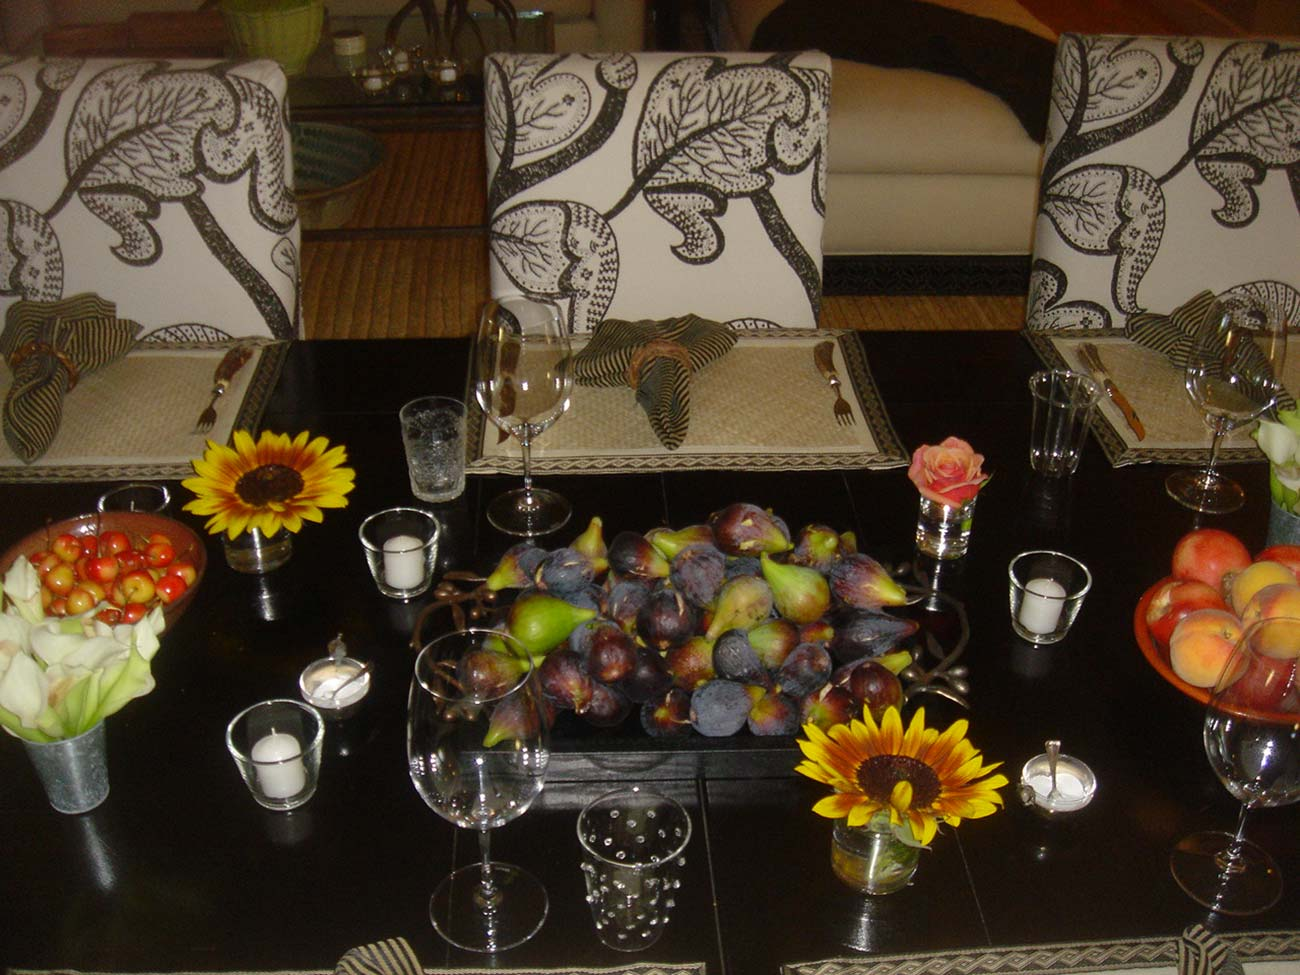 Tabletop design with a big bowl of figs, wild flowers and crystal